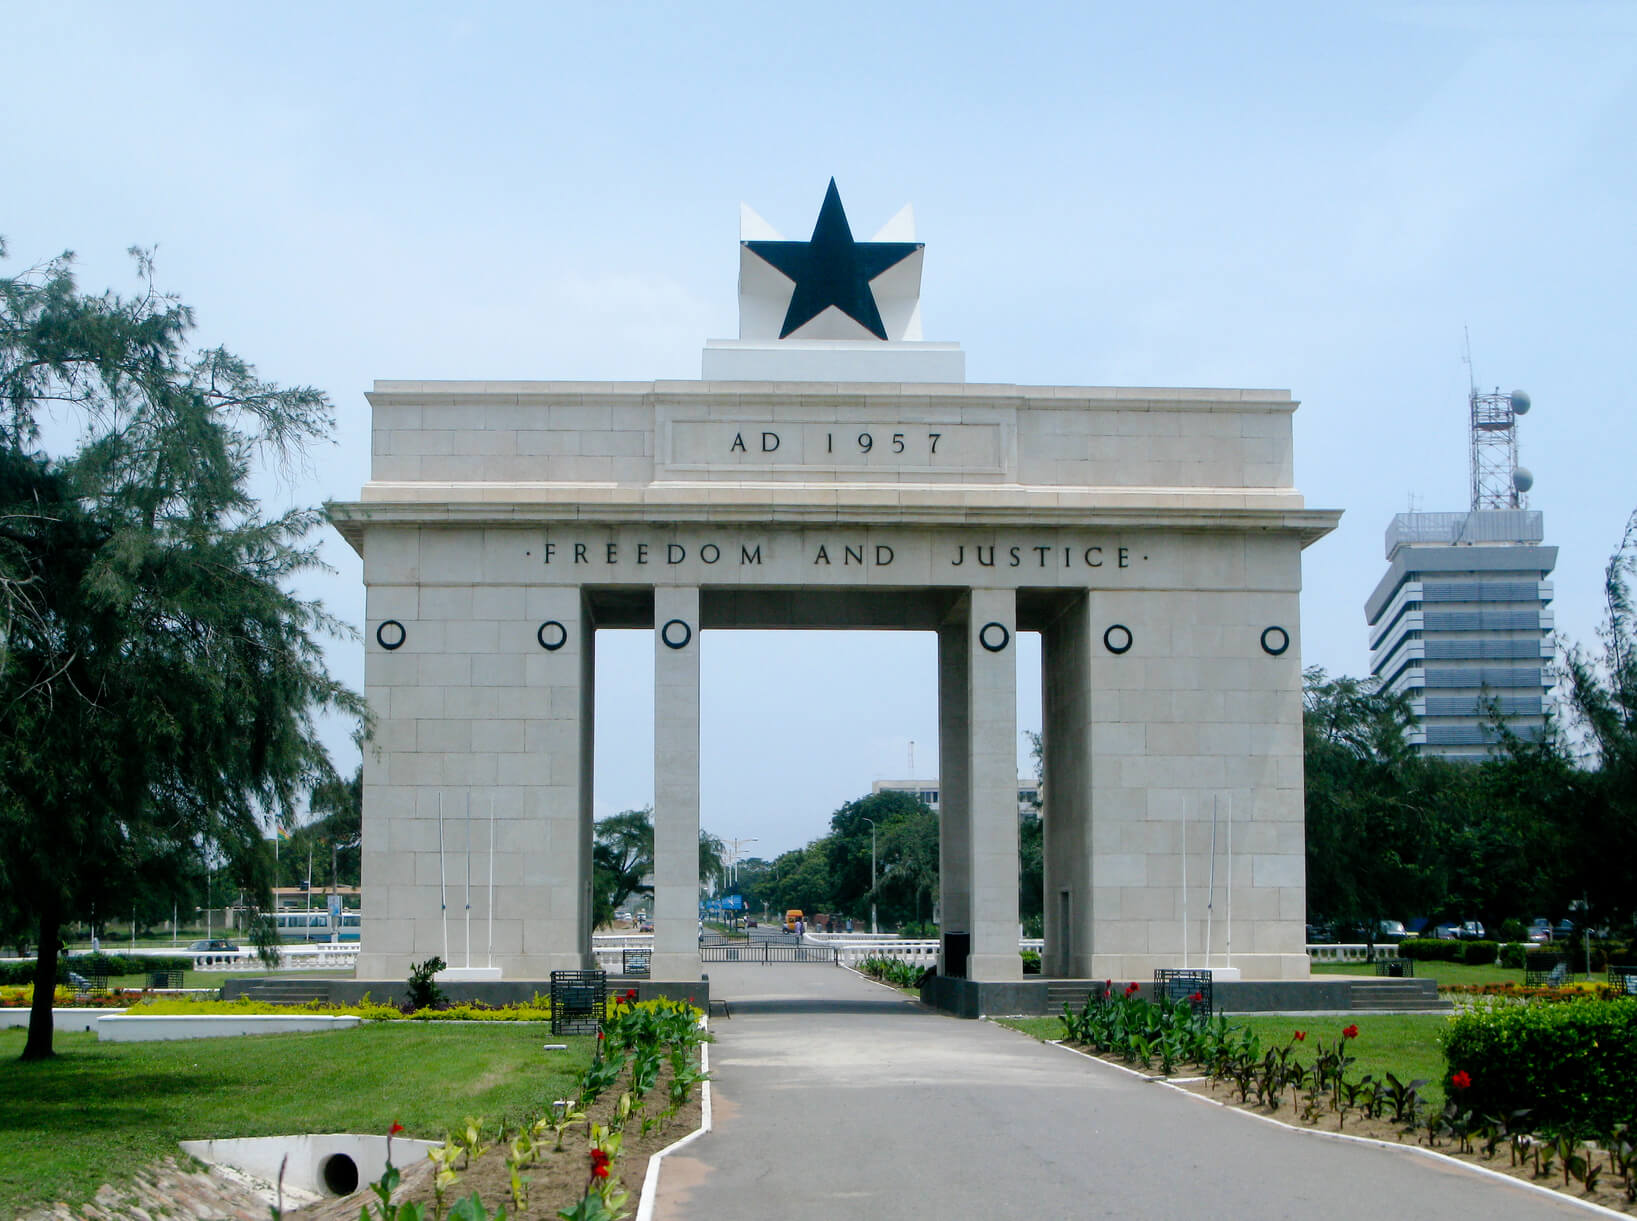 Non-stop from Milan, Italy to Accra, Ghana for only €289 roundtrip